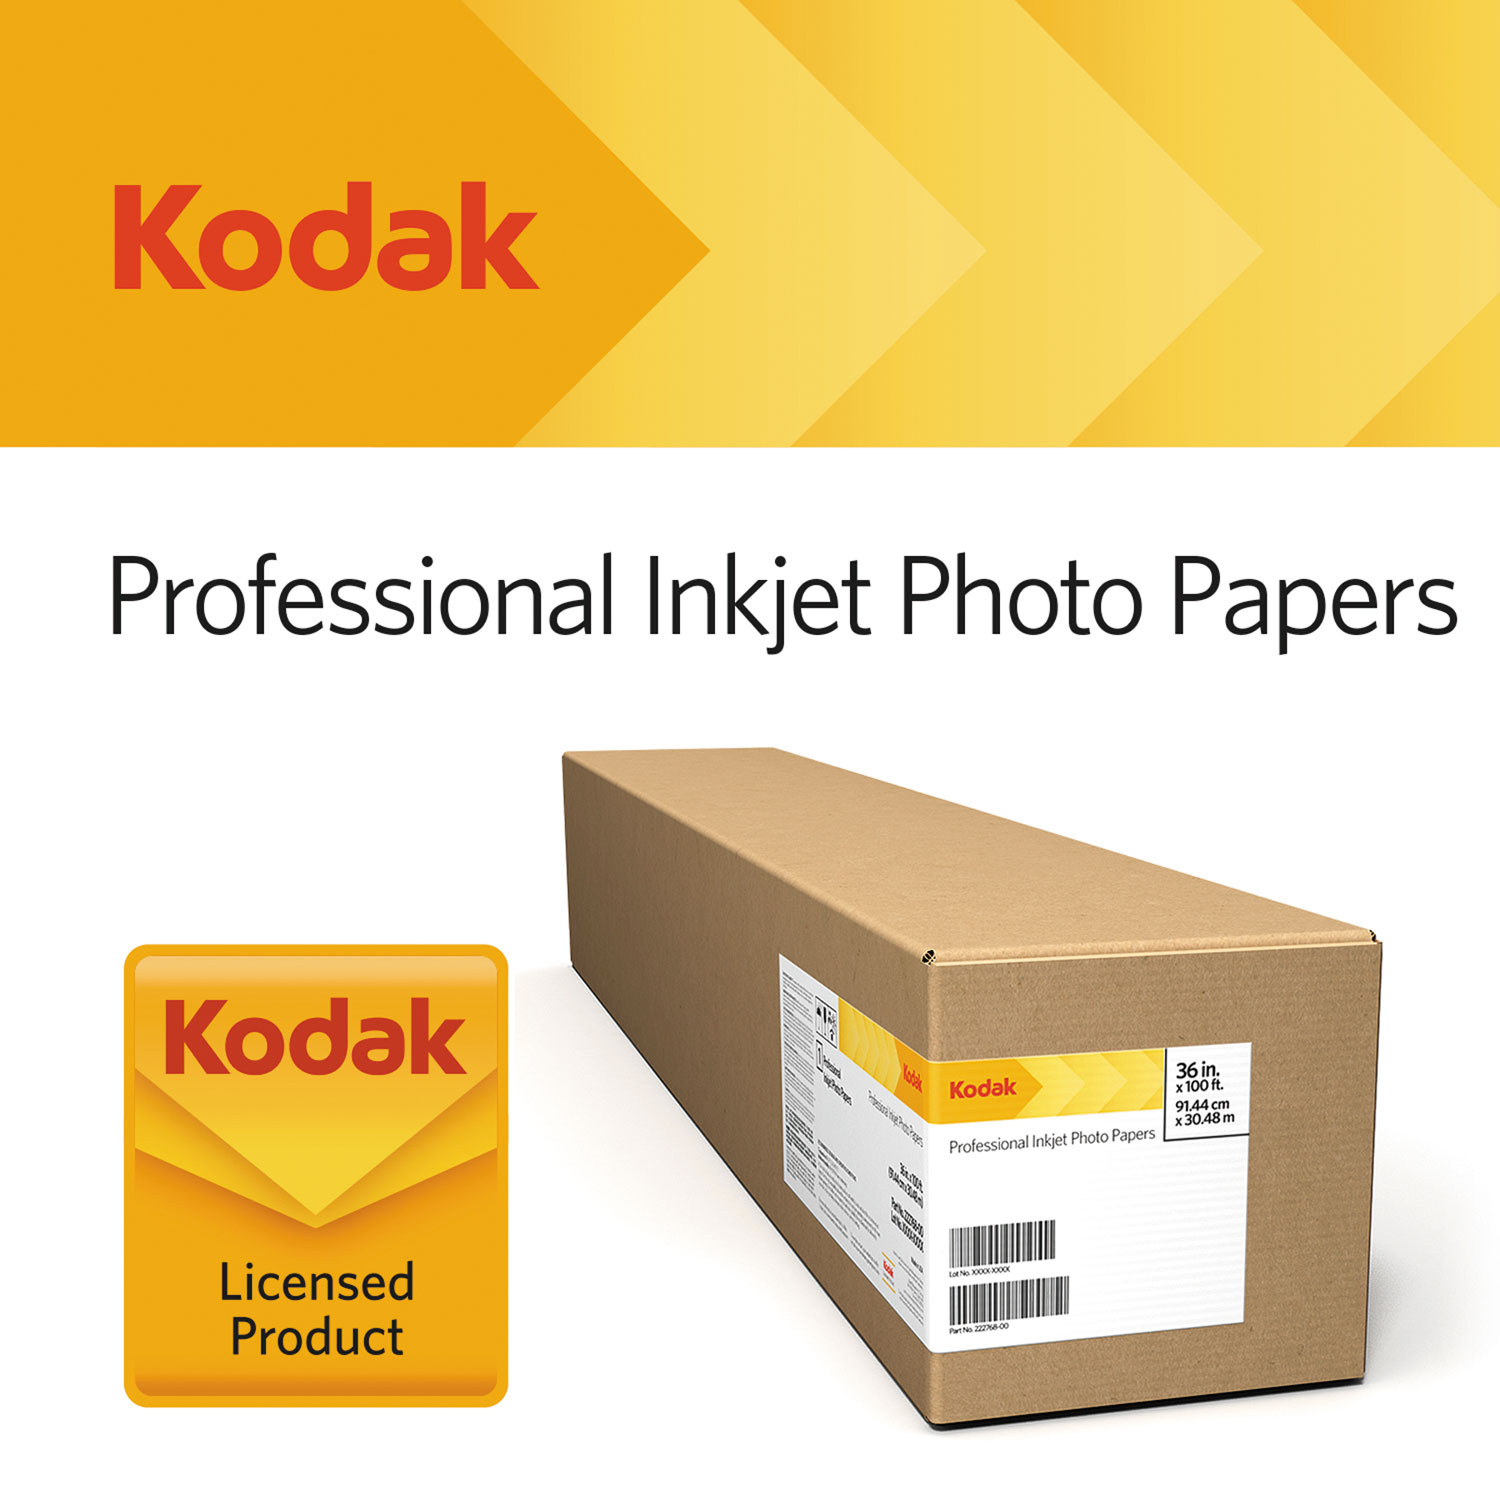 term papers on kodak Porters 5 forces analysis of kodak company alternatively, you can also visit our homepage for information on how to get help with assignments and term papers.